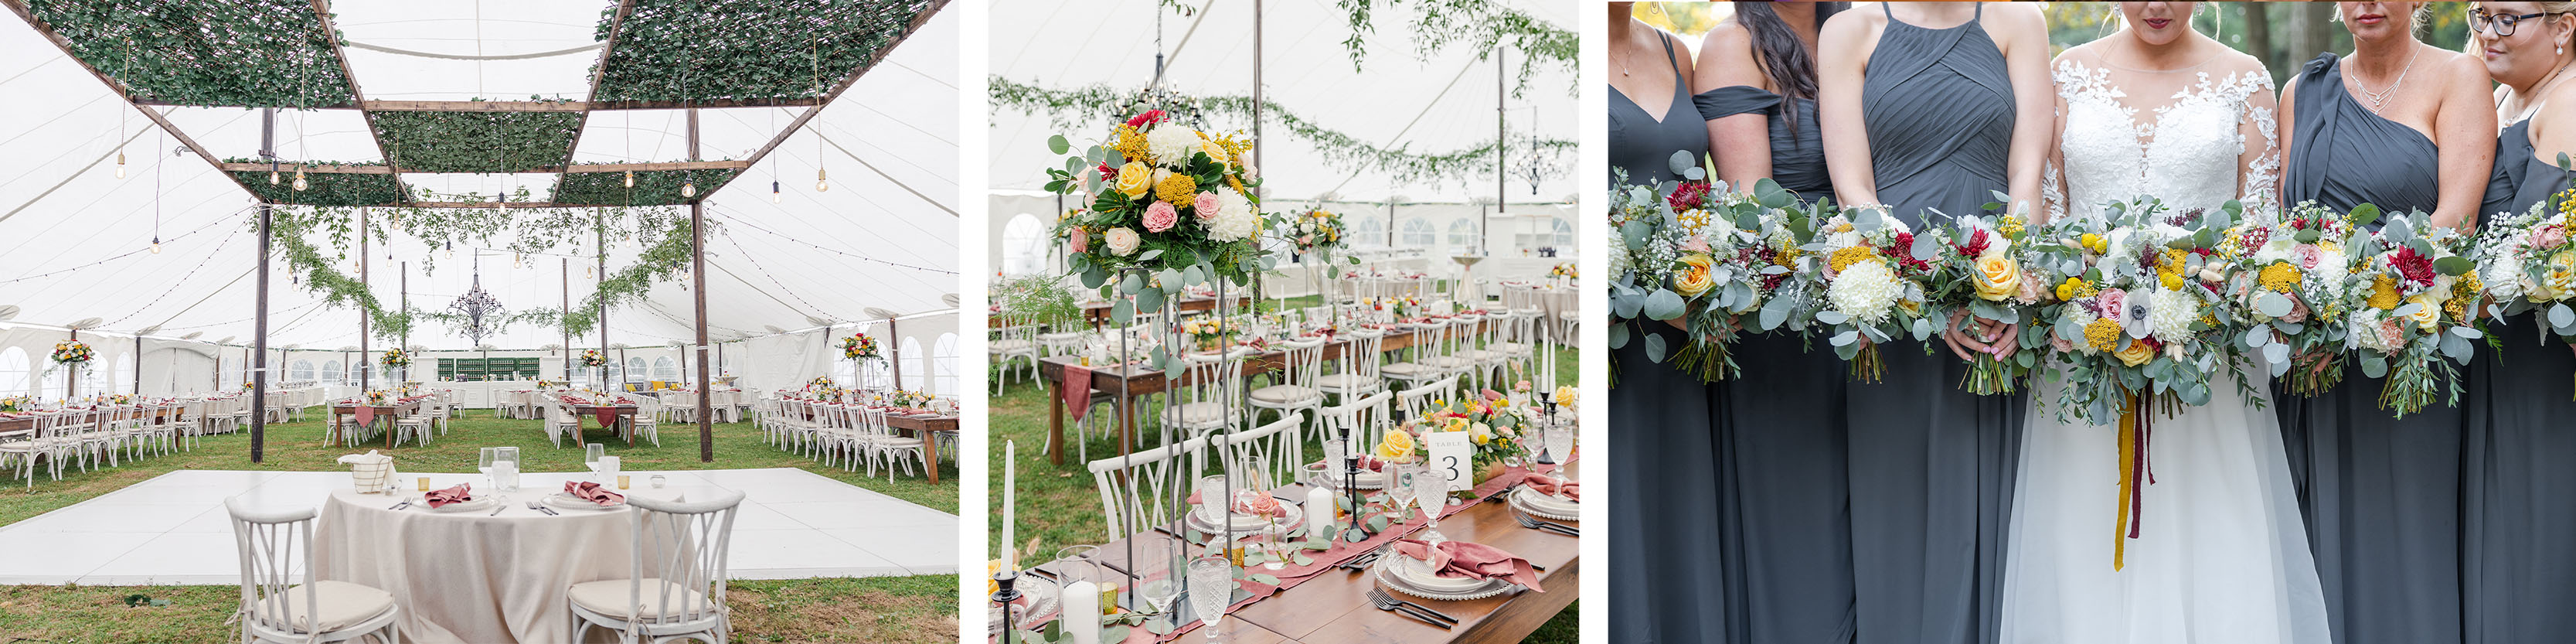 Special event rentals in South Bend-Mishawaka Metro Area